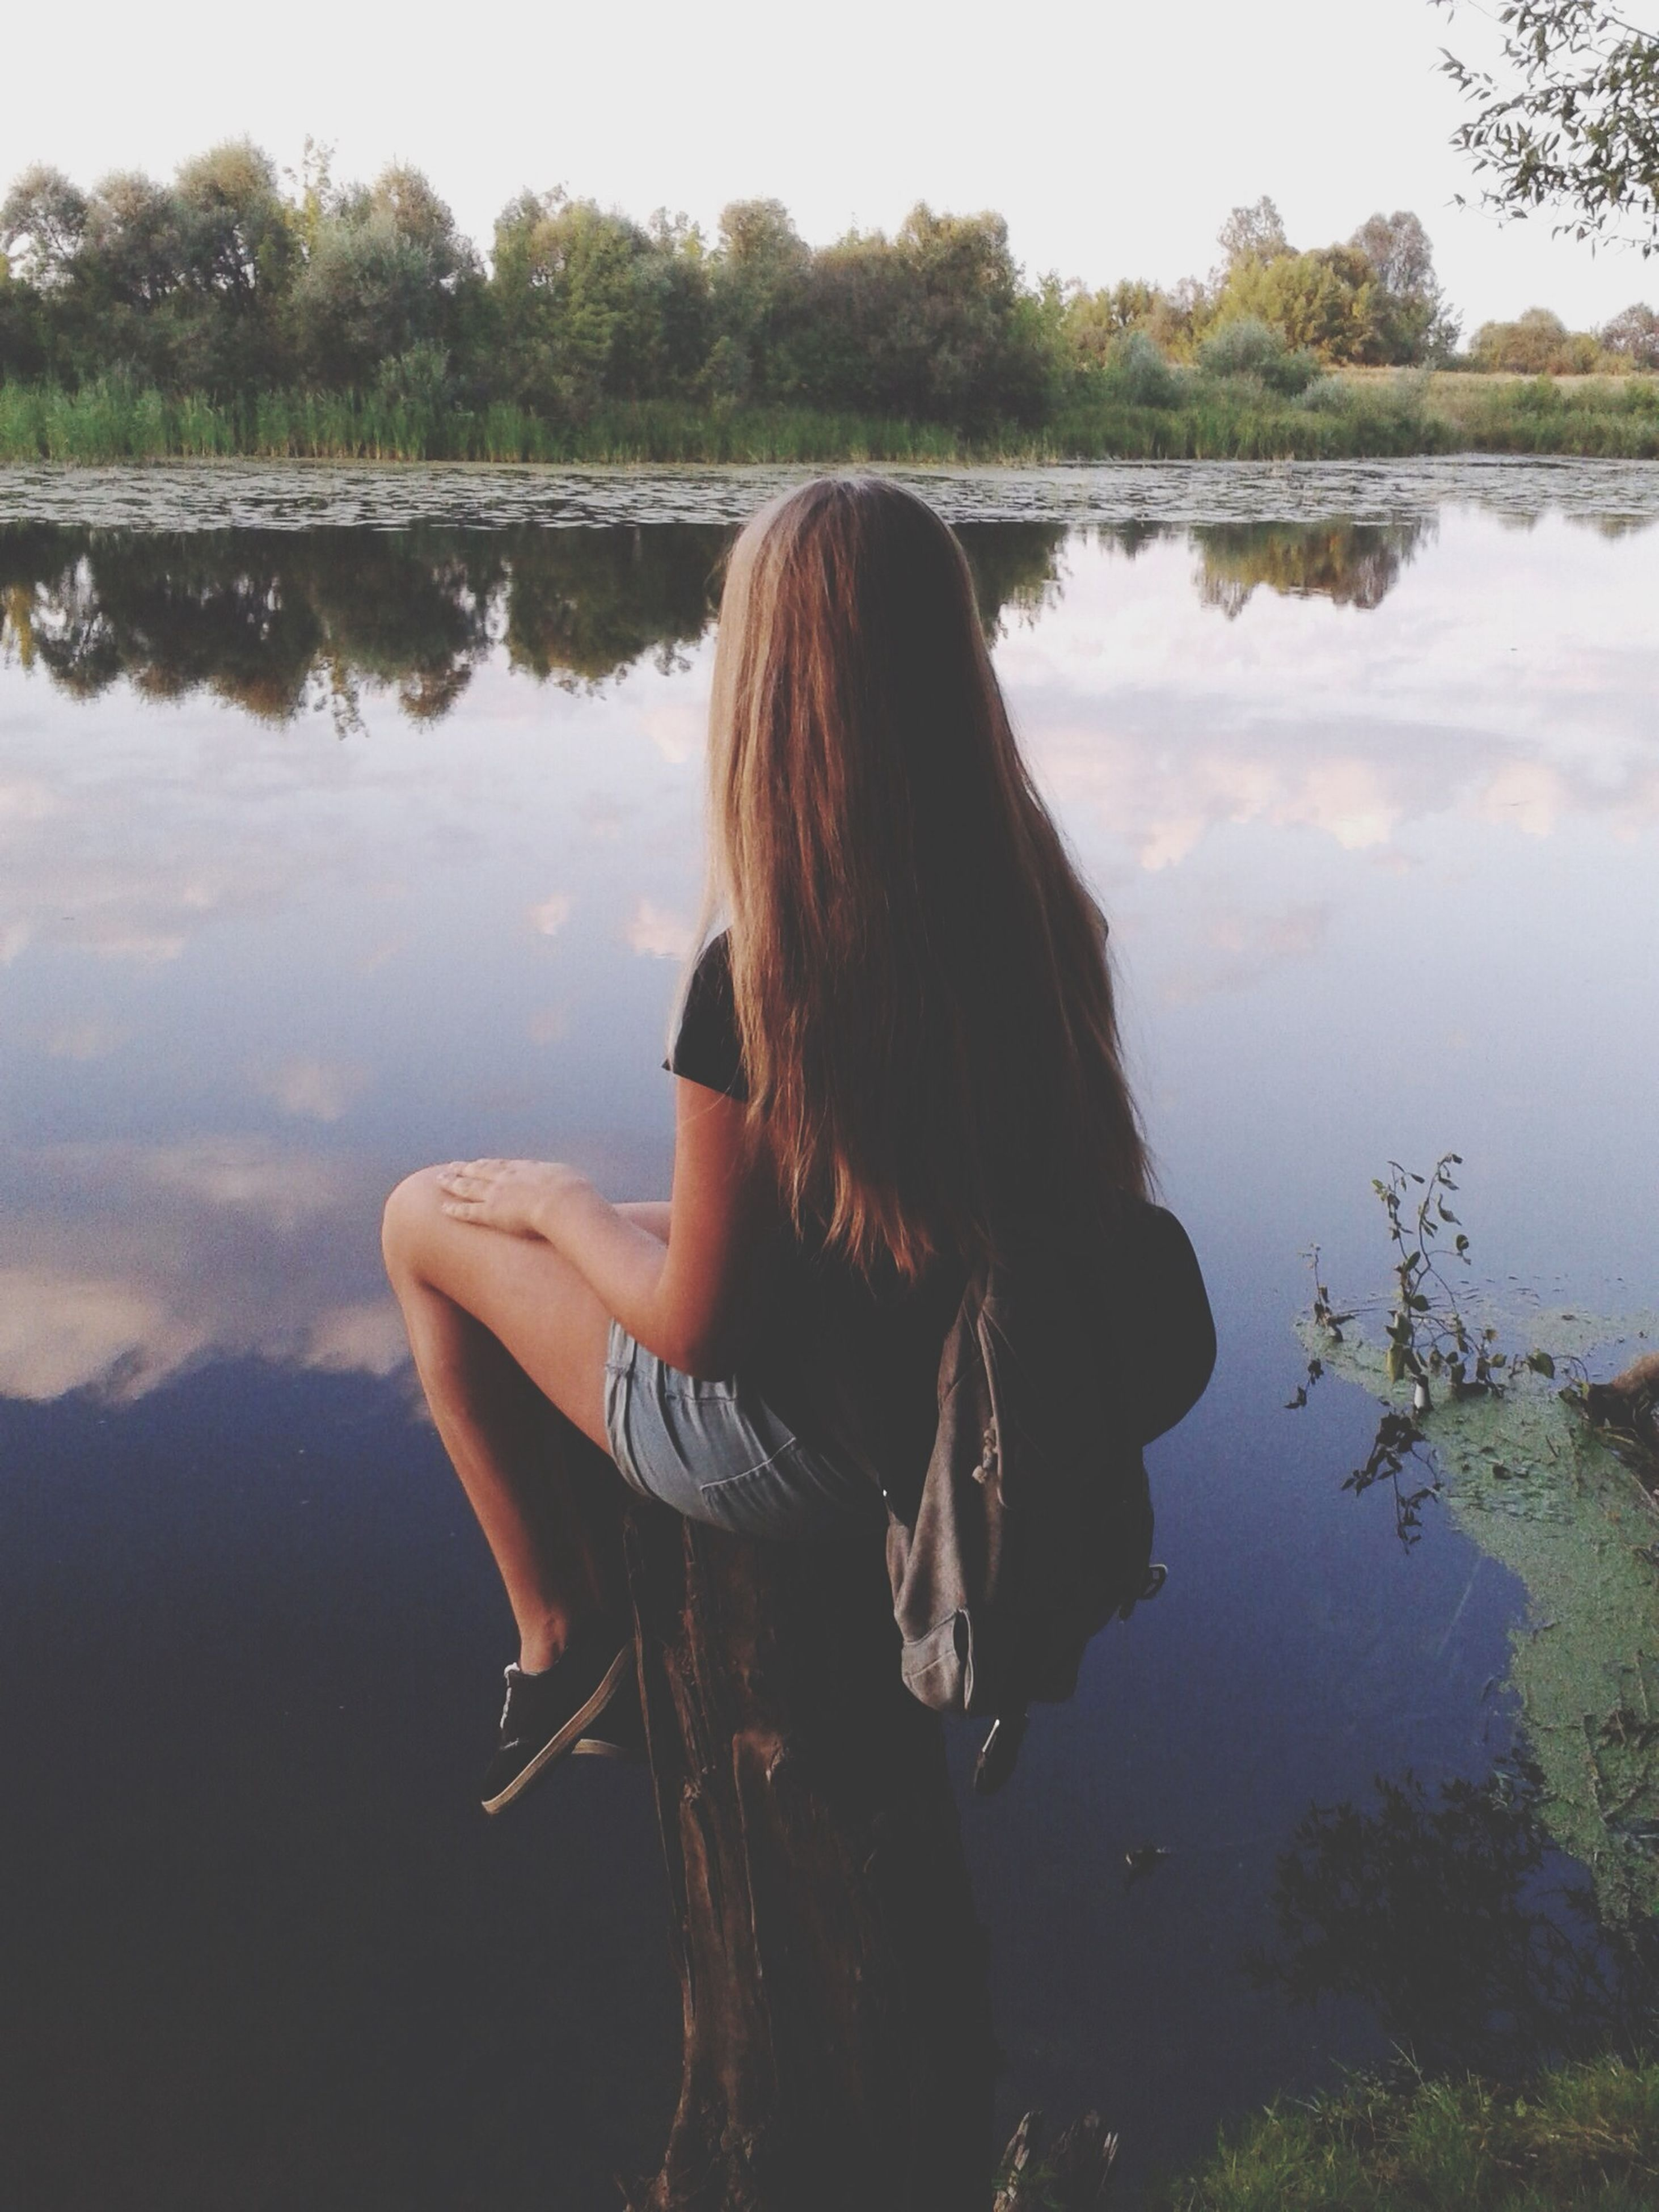 water, rear view, lake, leisure activity, lifestyles, long hair, reflection, tranquility, tree, nature, tranquil scene, standing, person, three quarter length, beauty in nature, waist up, casual clothing, side view